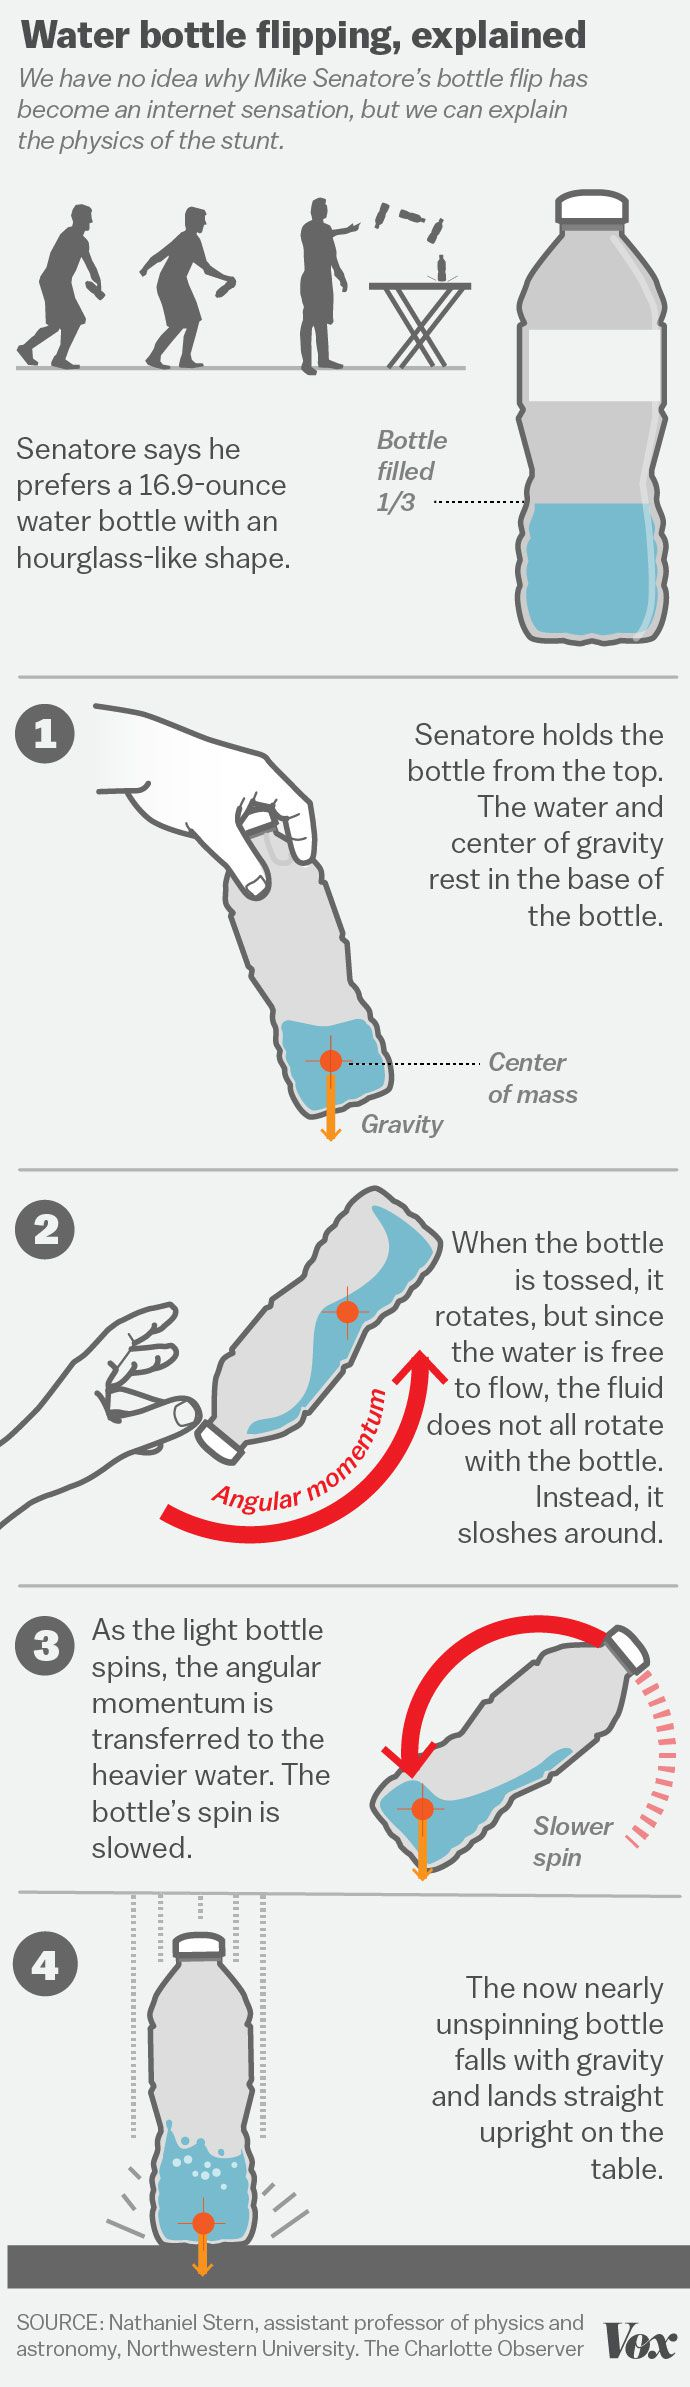 The Complex Physics Of That Viral Water Bottle Trick Explained Vox